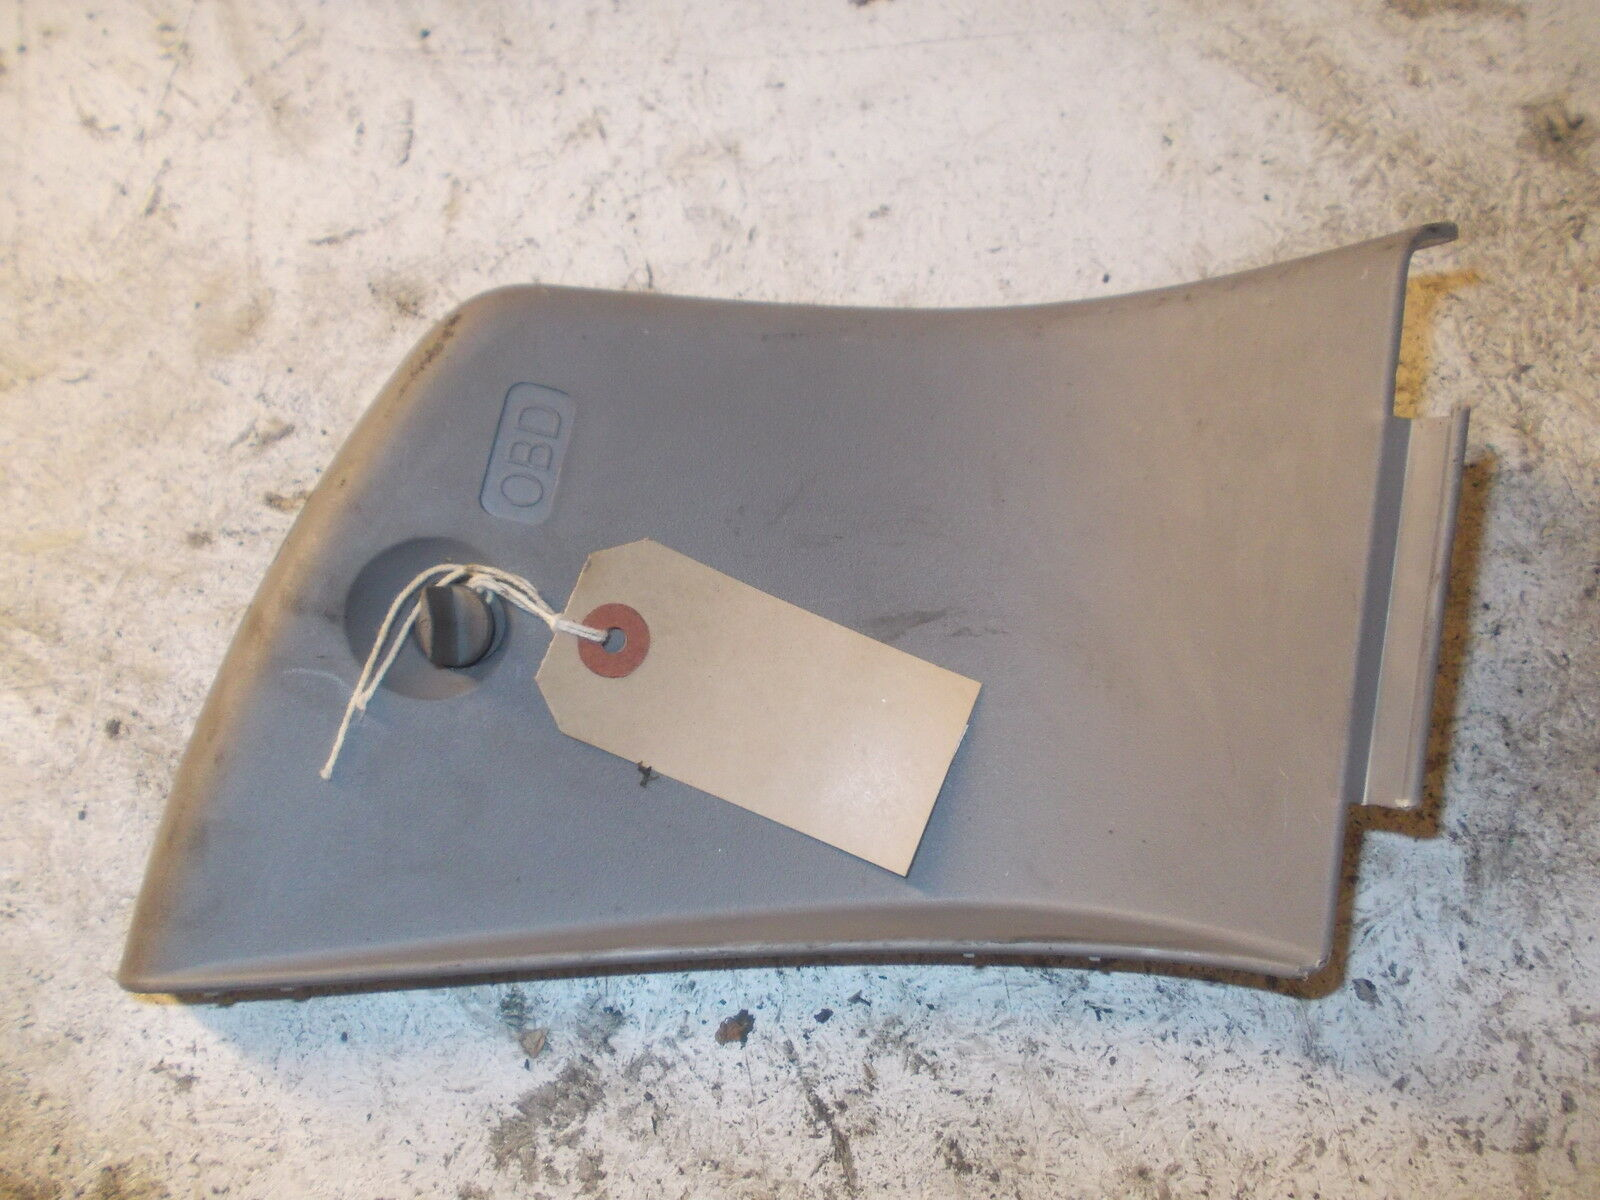 Mercedes Sprinter 2006 10 Fuse Box Cover A9066880008 500 2012 1 Of See More